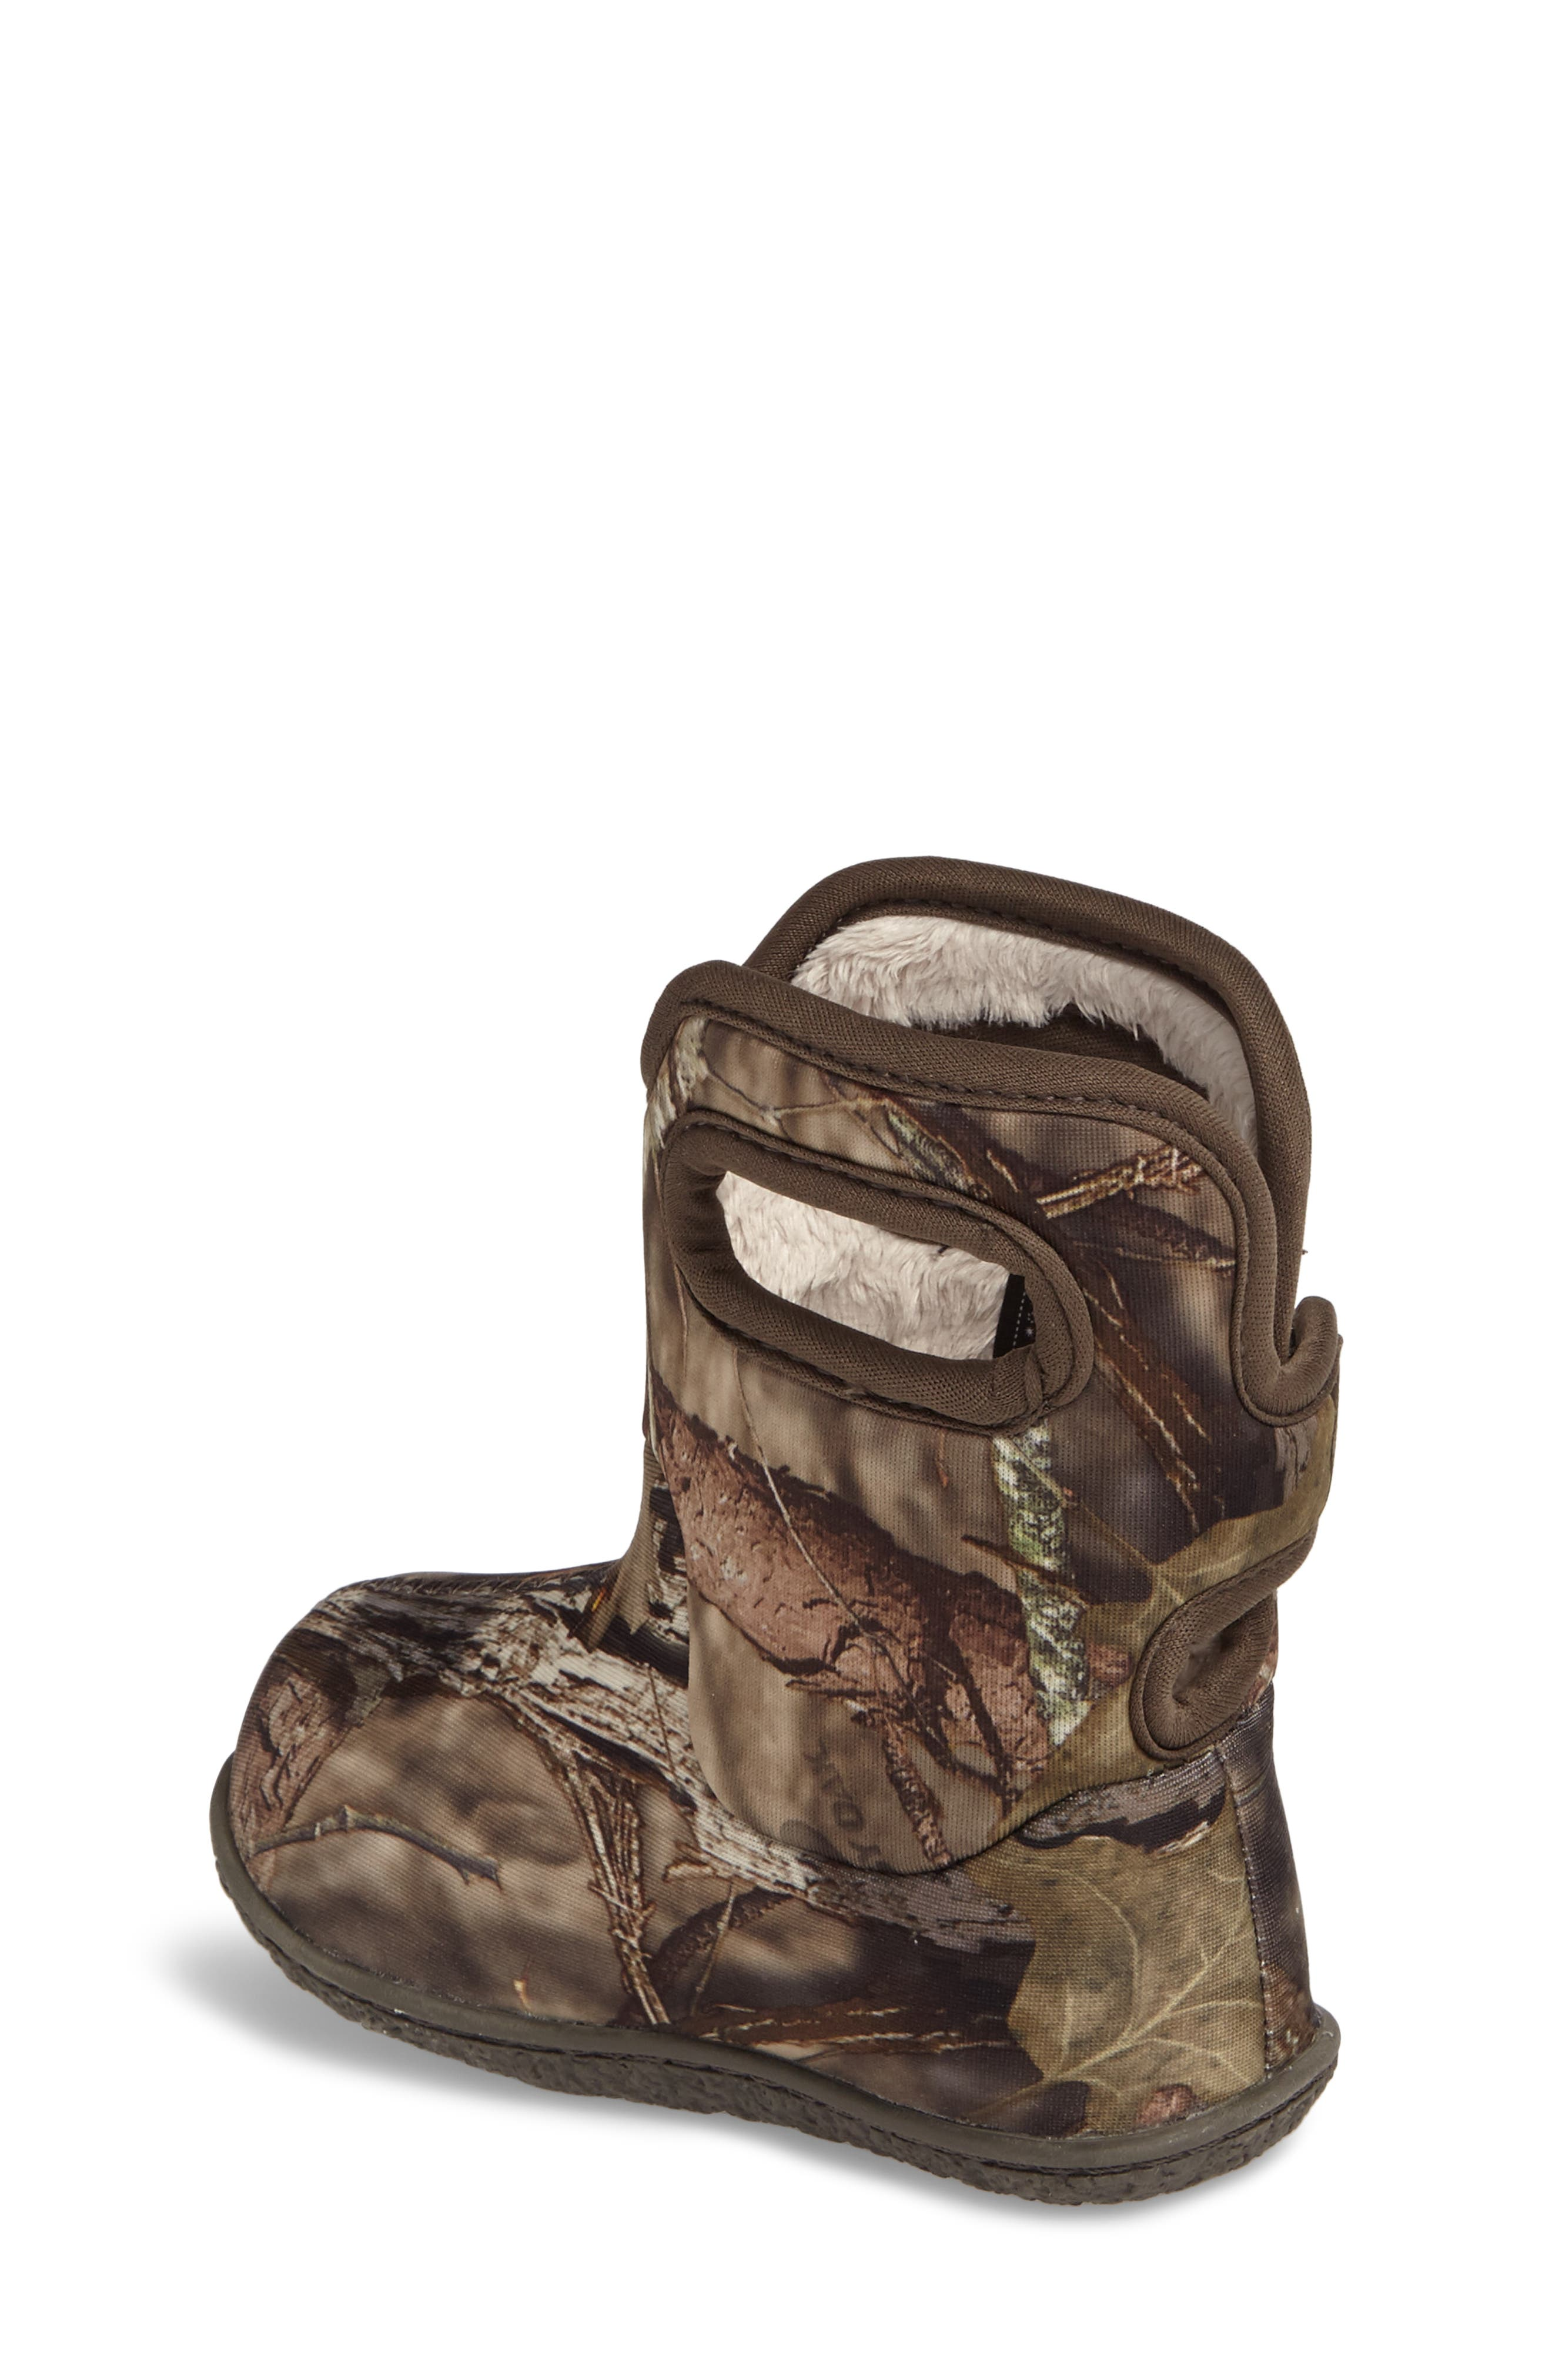 Baby Bogs Classic Camo Insulated Waterproof Boot,                             Alternate thumbnail 2, color,                             MOSSY OAK COUNTRY